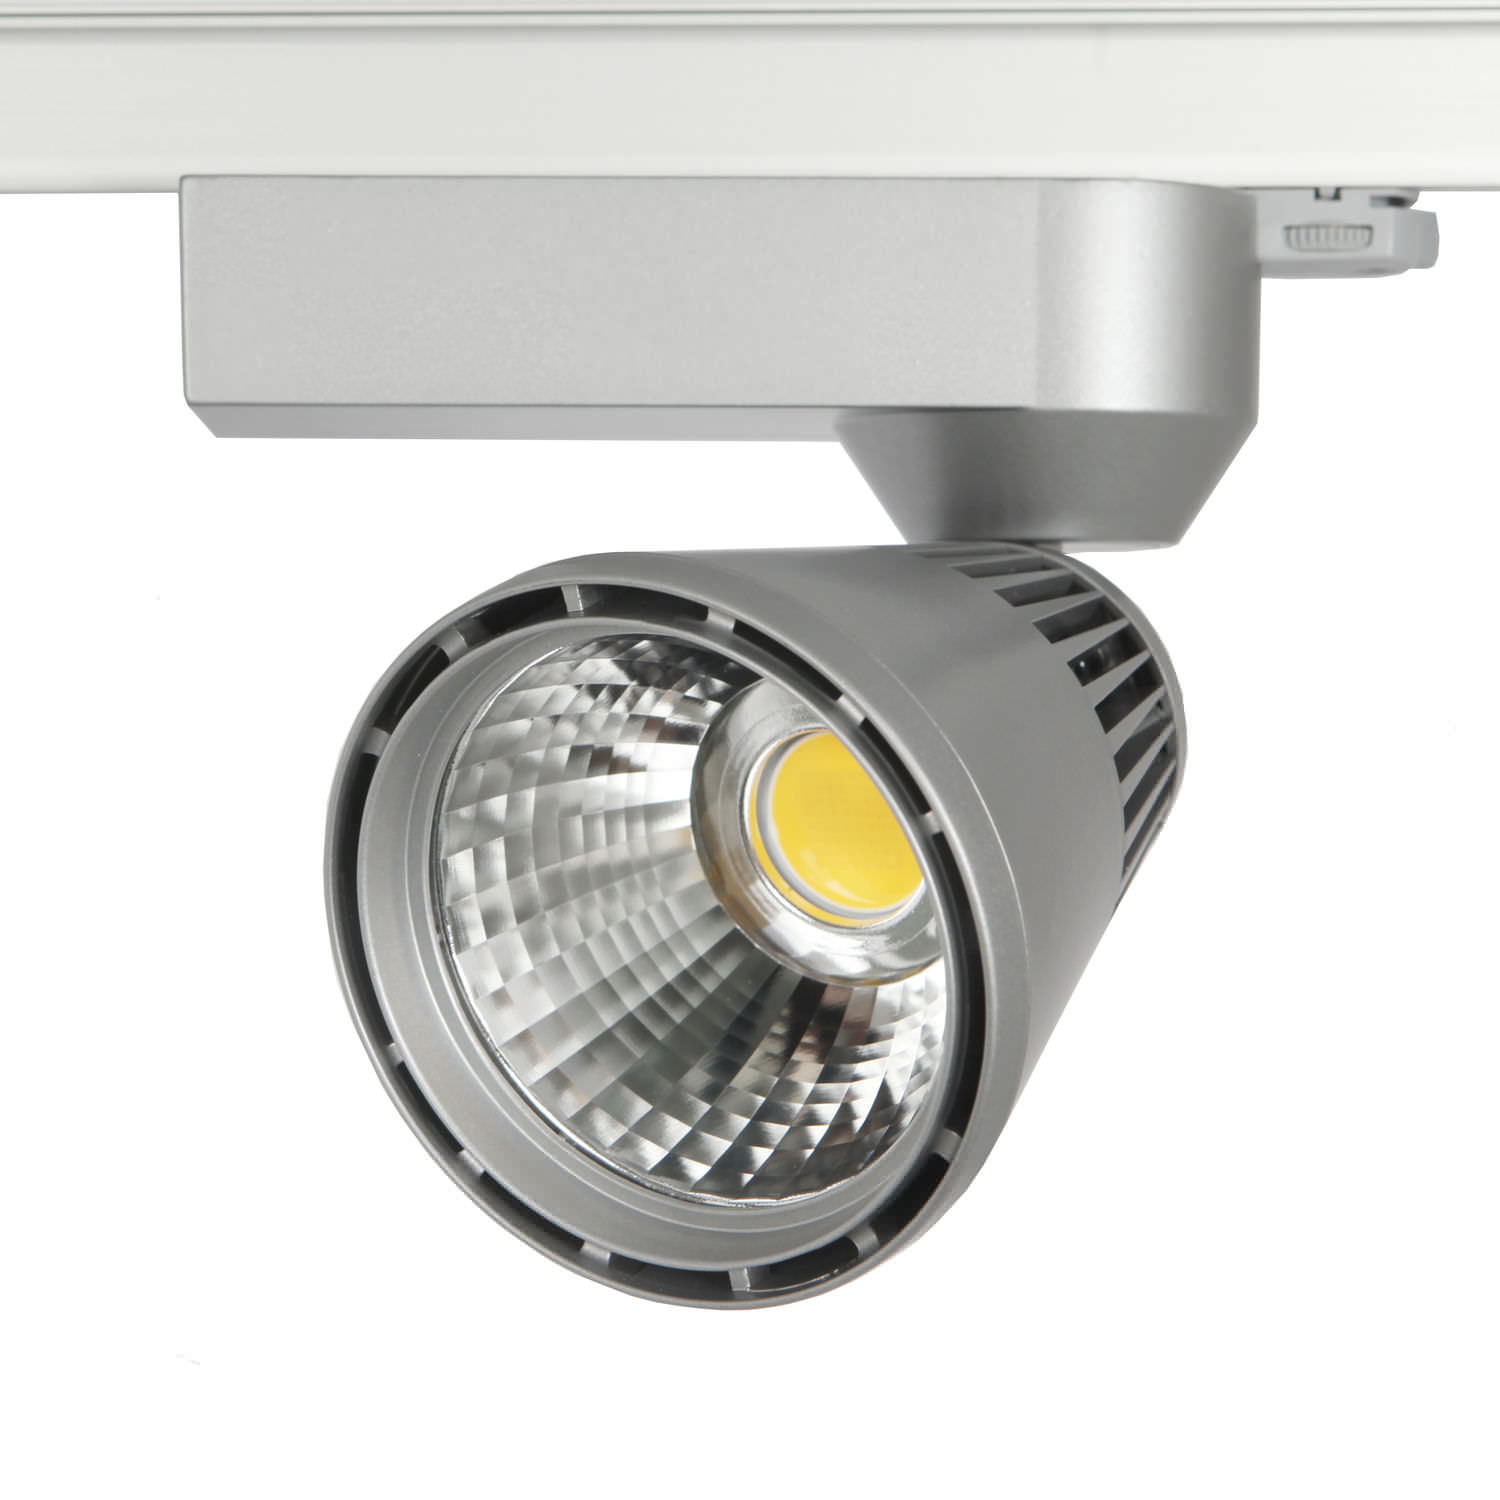 led track light  round  metal  commercial  lean  lival - led track light  round  metal  commercial  lean